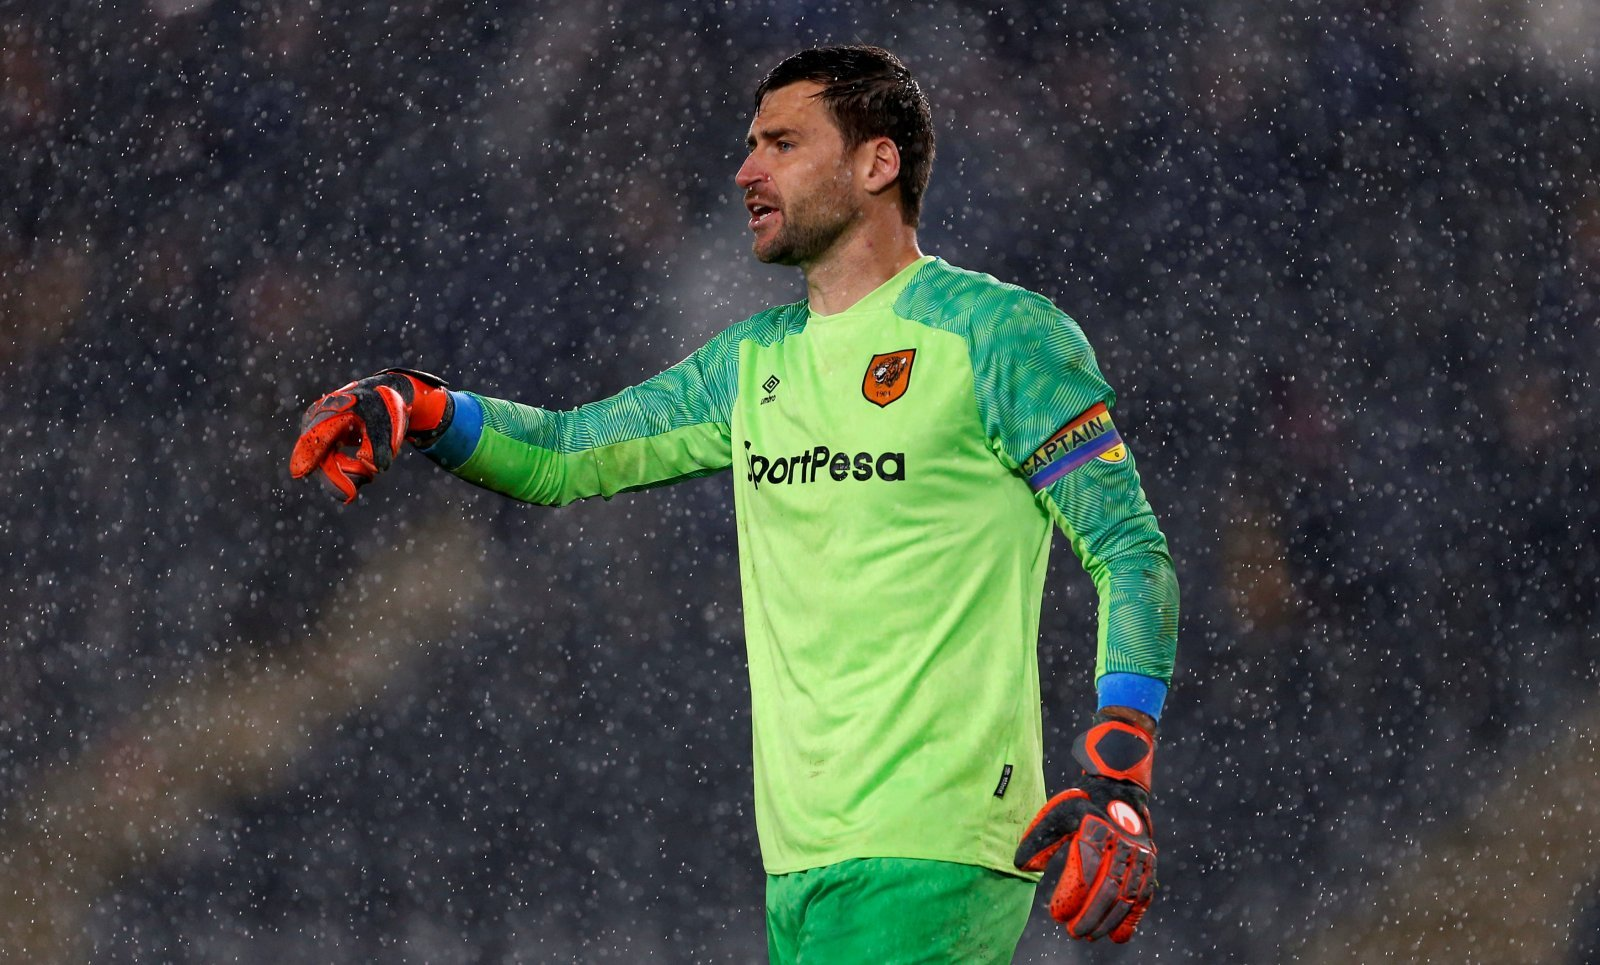 Liverpool: David Marshall is the reliable Alisson substitute the Reds need